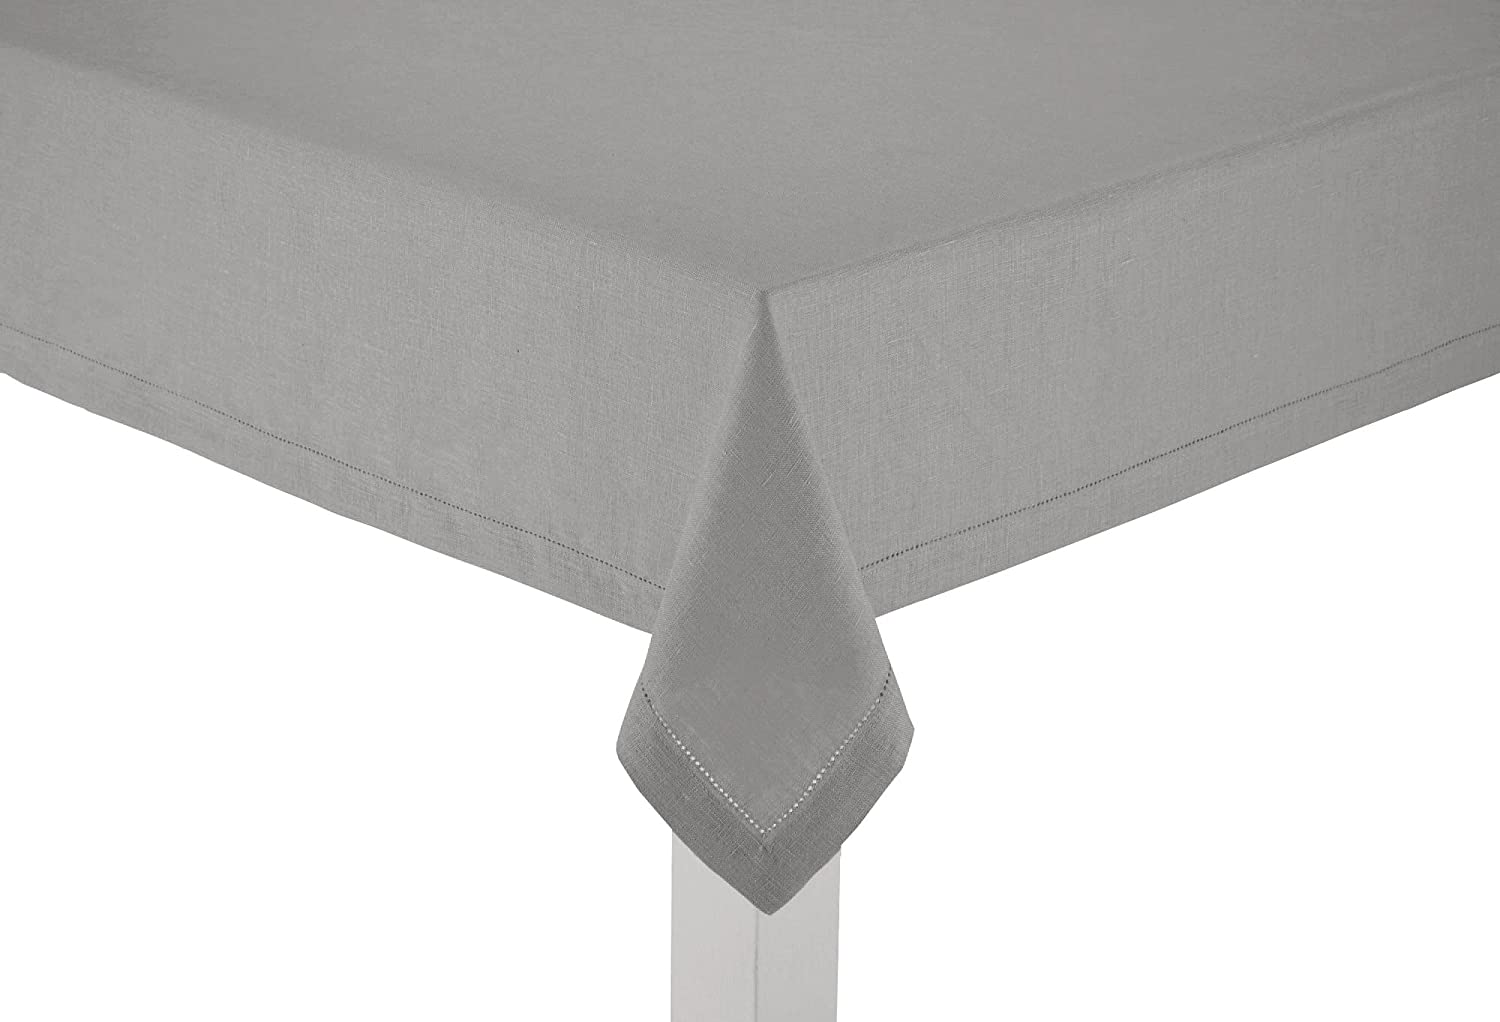 Amazon.com: 100% Linen Hemstitch Table Cloth   Size 60x108 Charcoal   Hand  Crafted And Hand Stitched Table Cloth With Hemstitch Detailing.